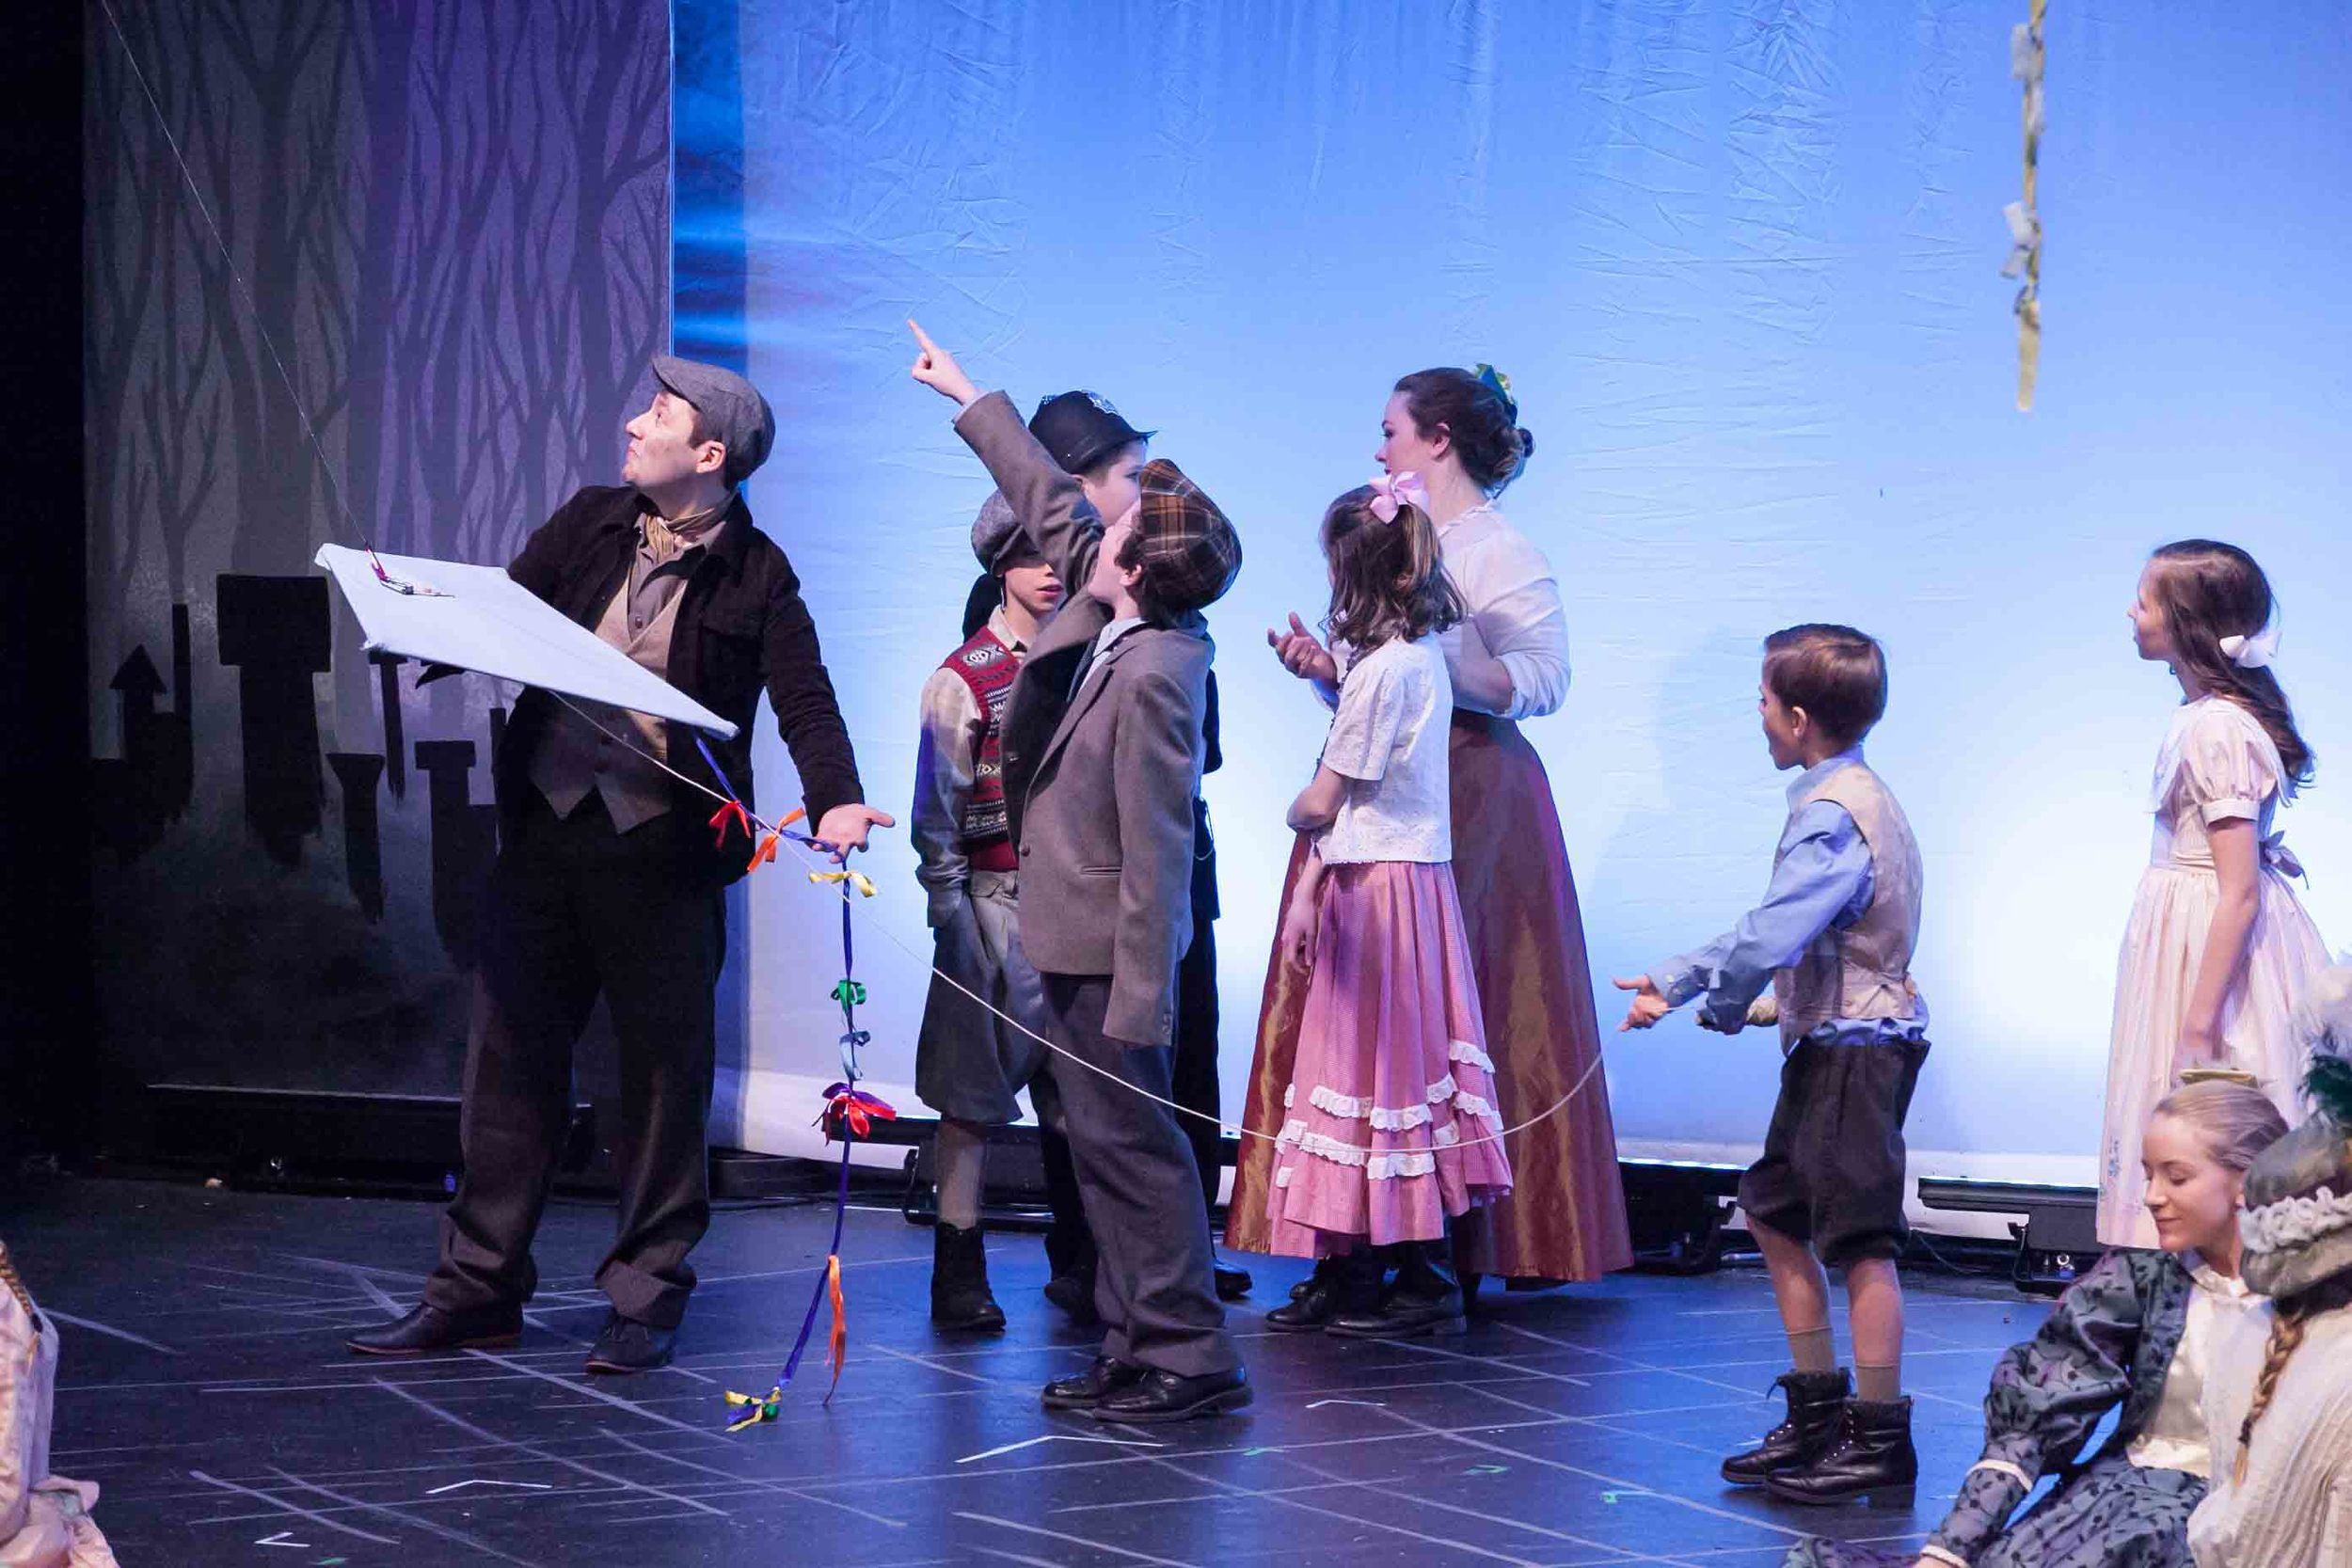 2-4-16 Mary Poppins Proper Cast 0325.jpg